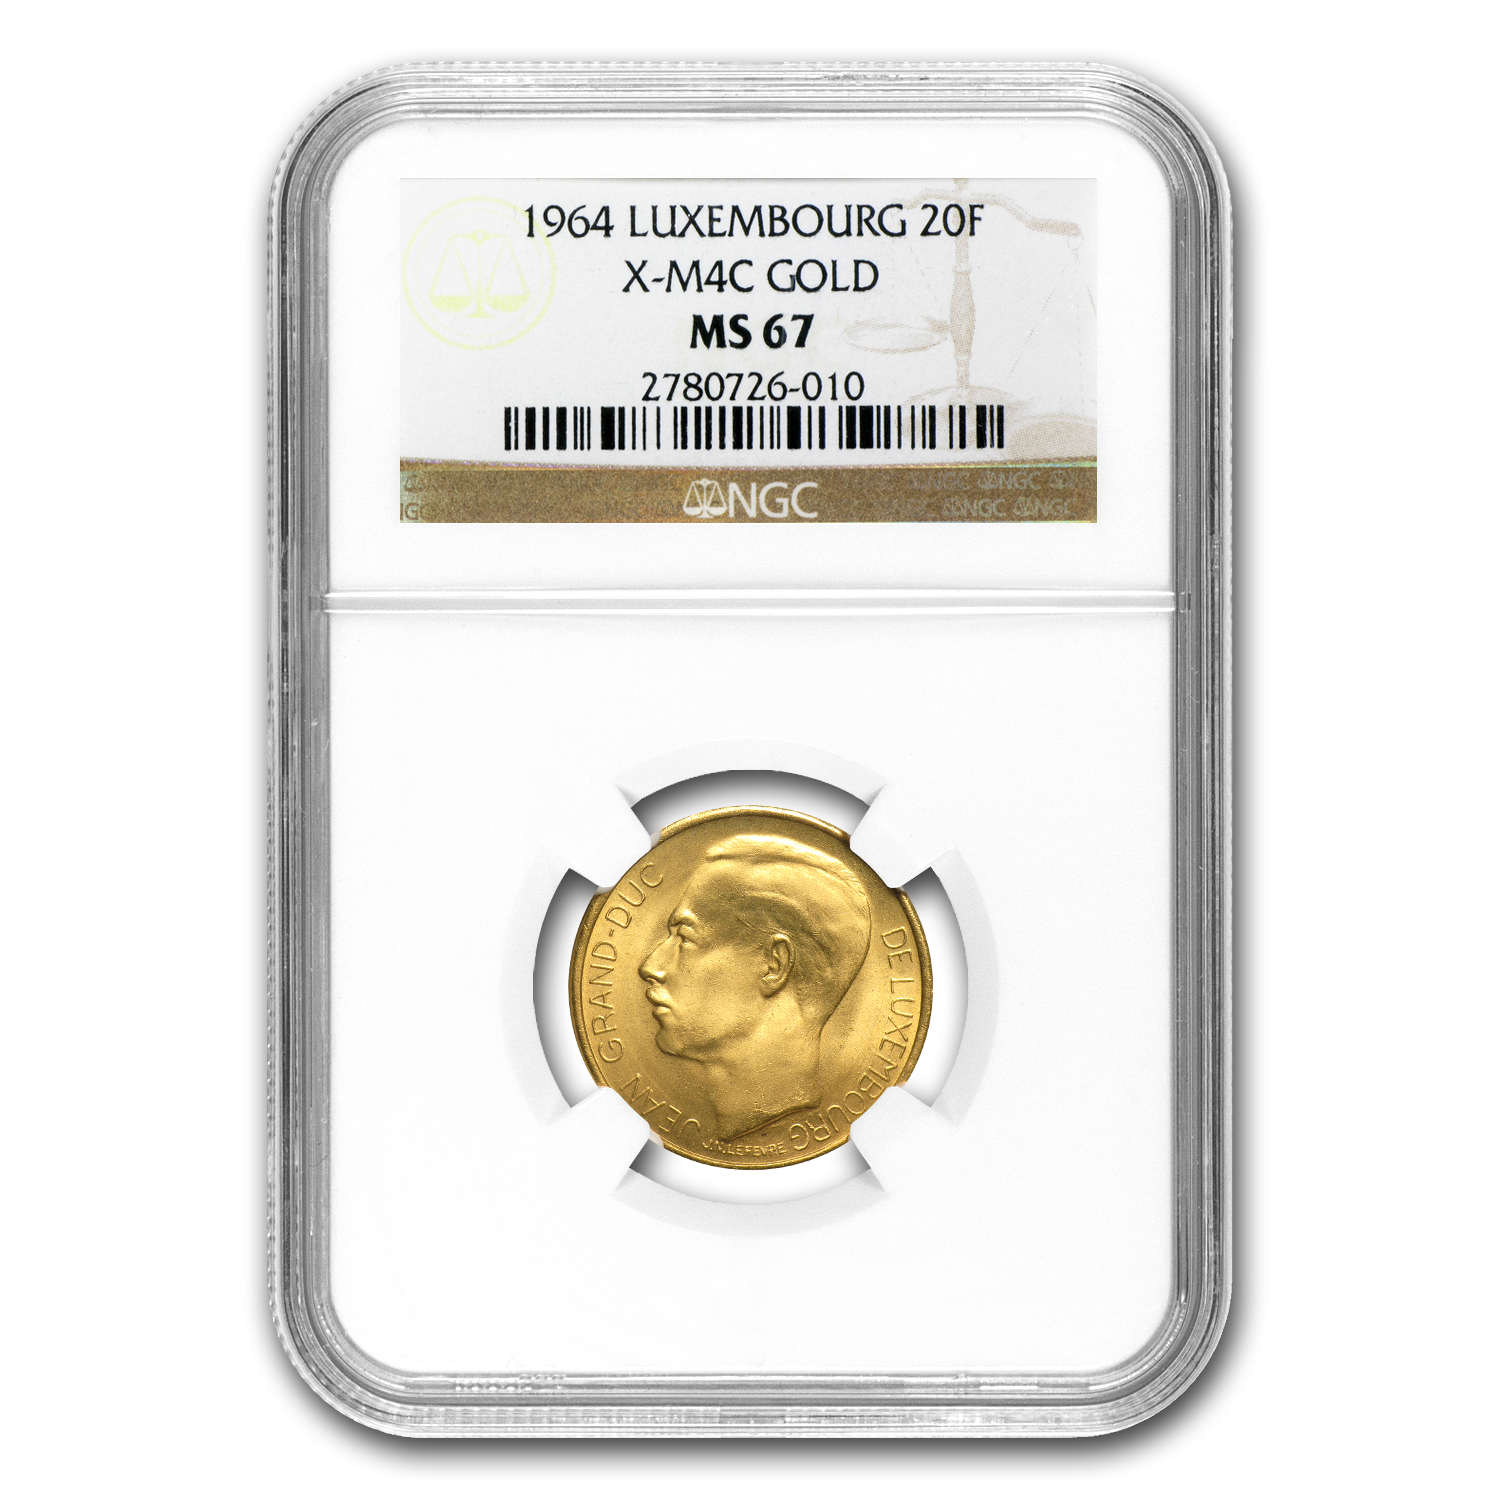 1964 Luxembourg Gold 20 Francs Coronation MS-67 NGC